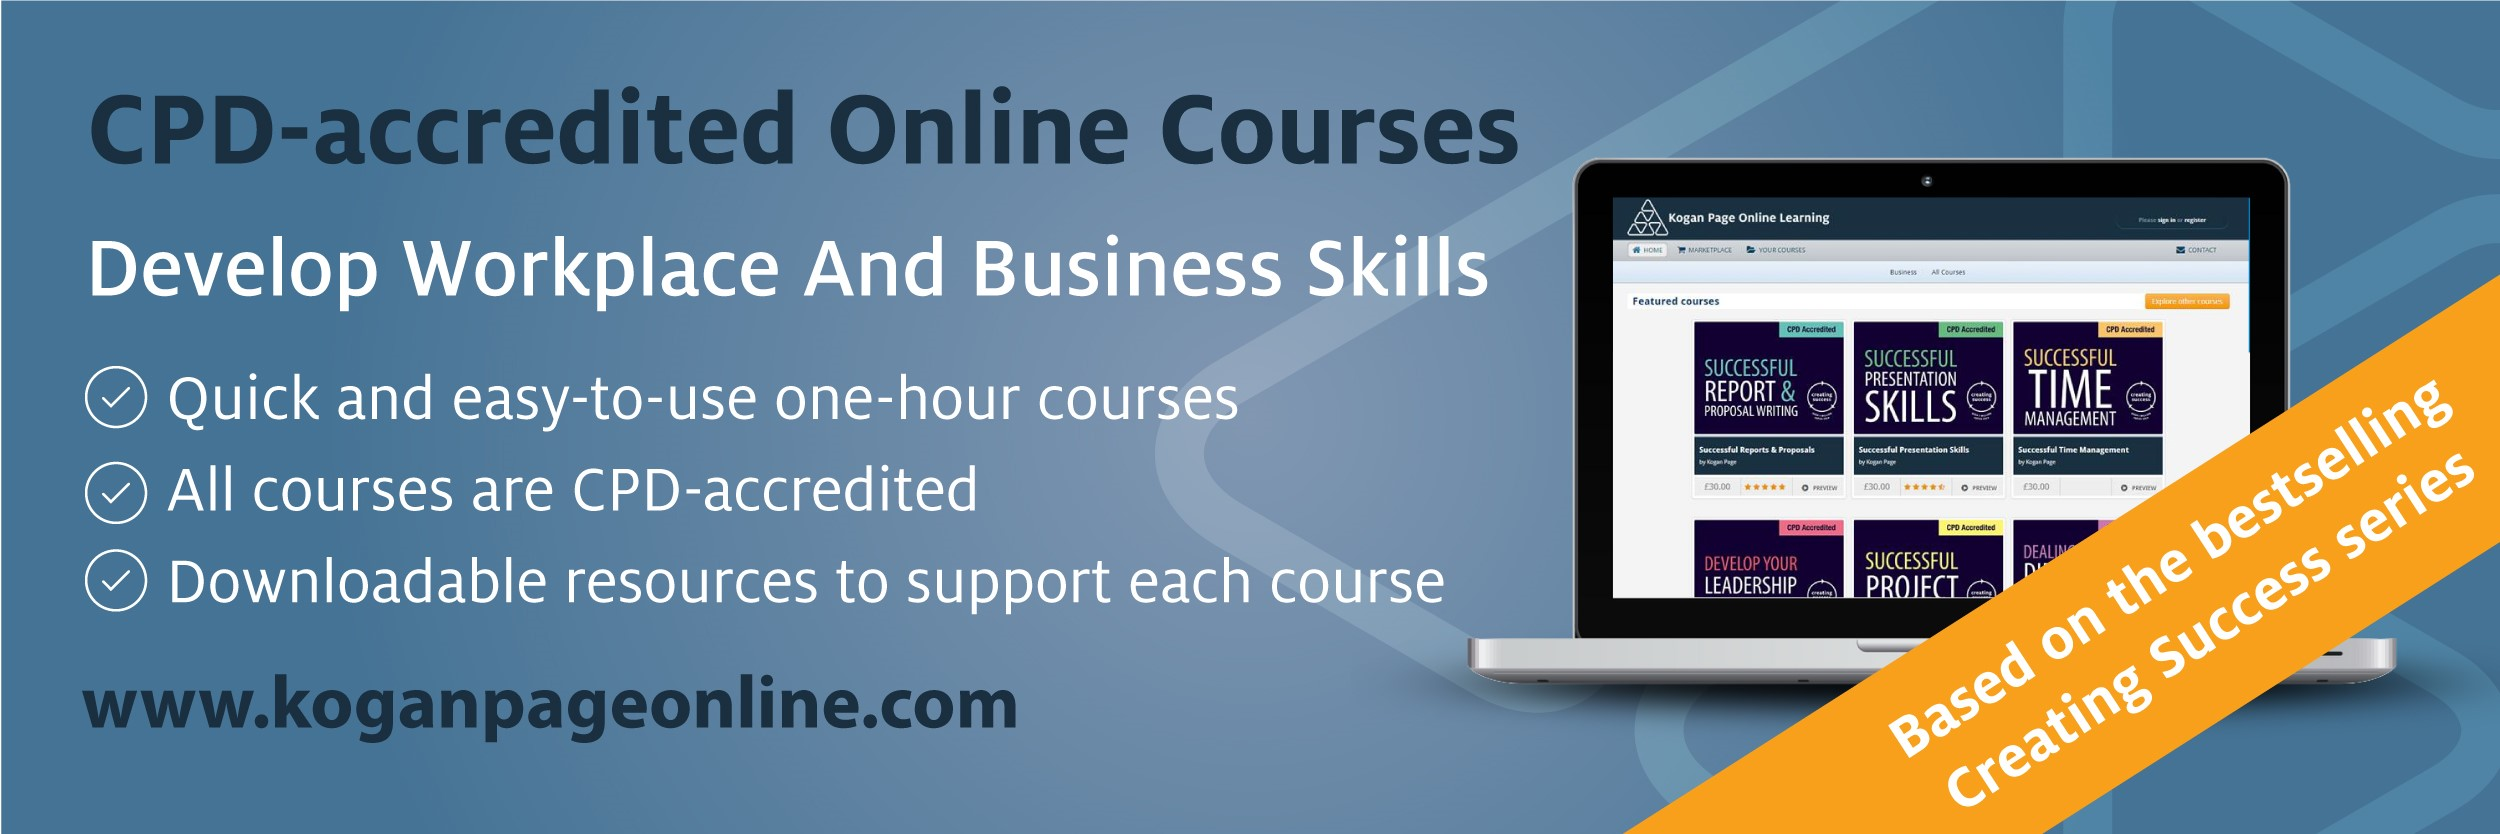 new-images-online-courses-banner.jpg